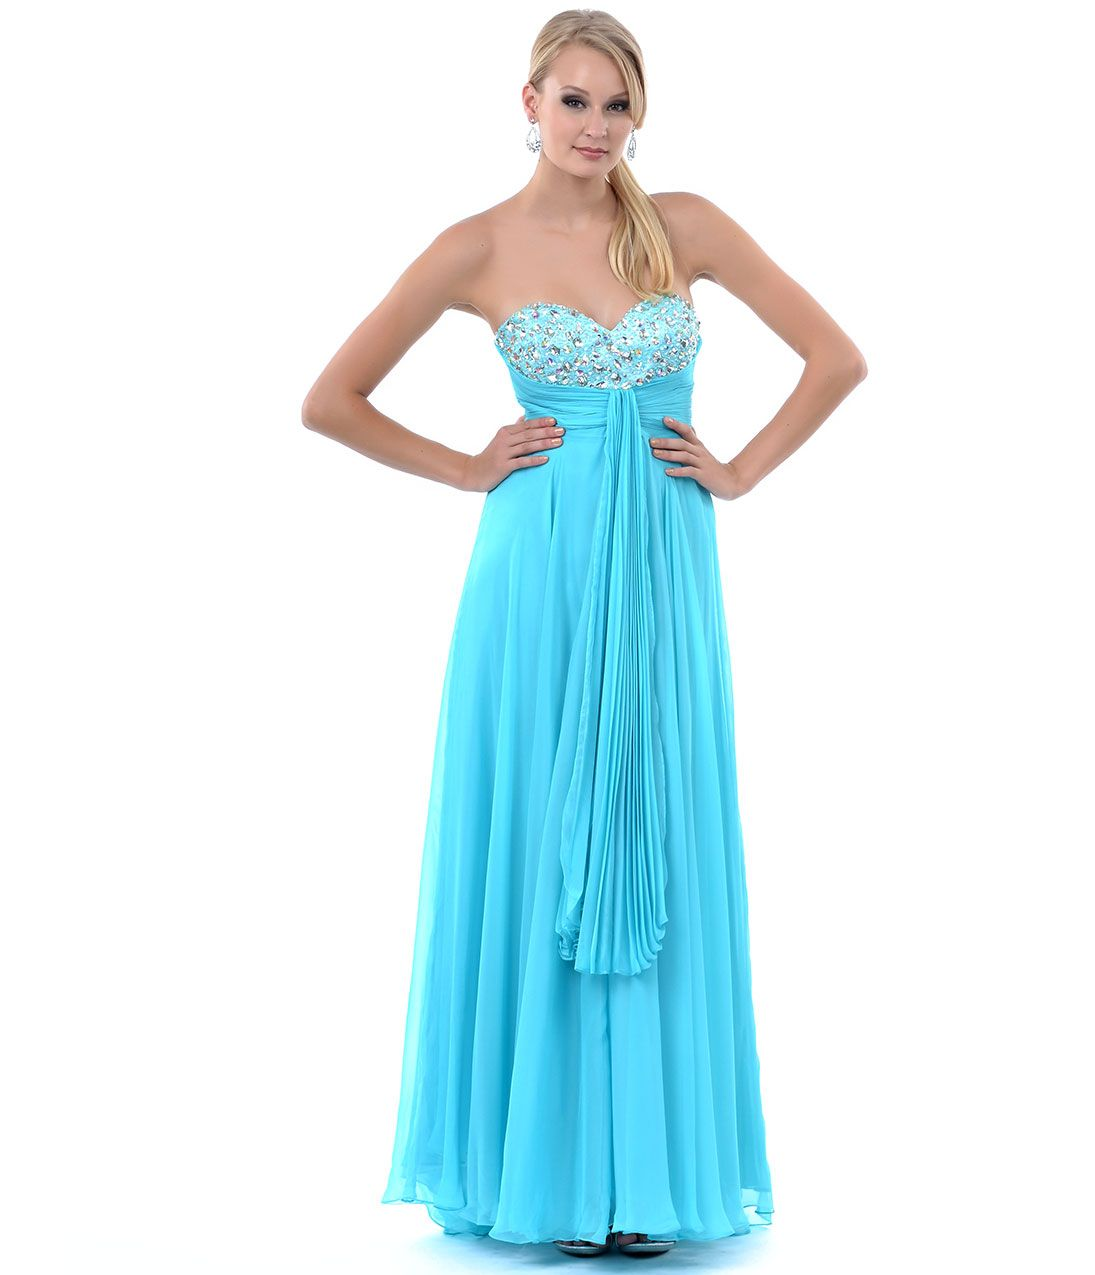 Turquoise Blue Formal Dresses for Women | Dress images